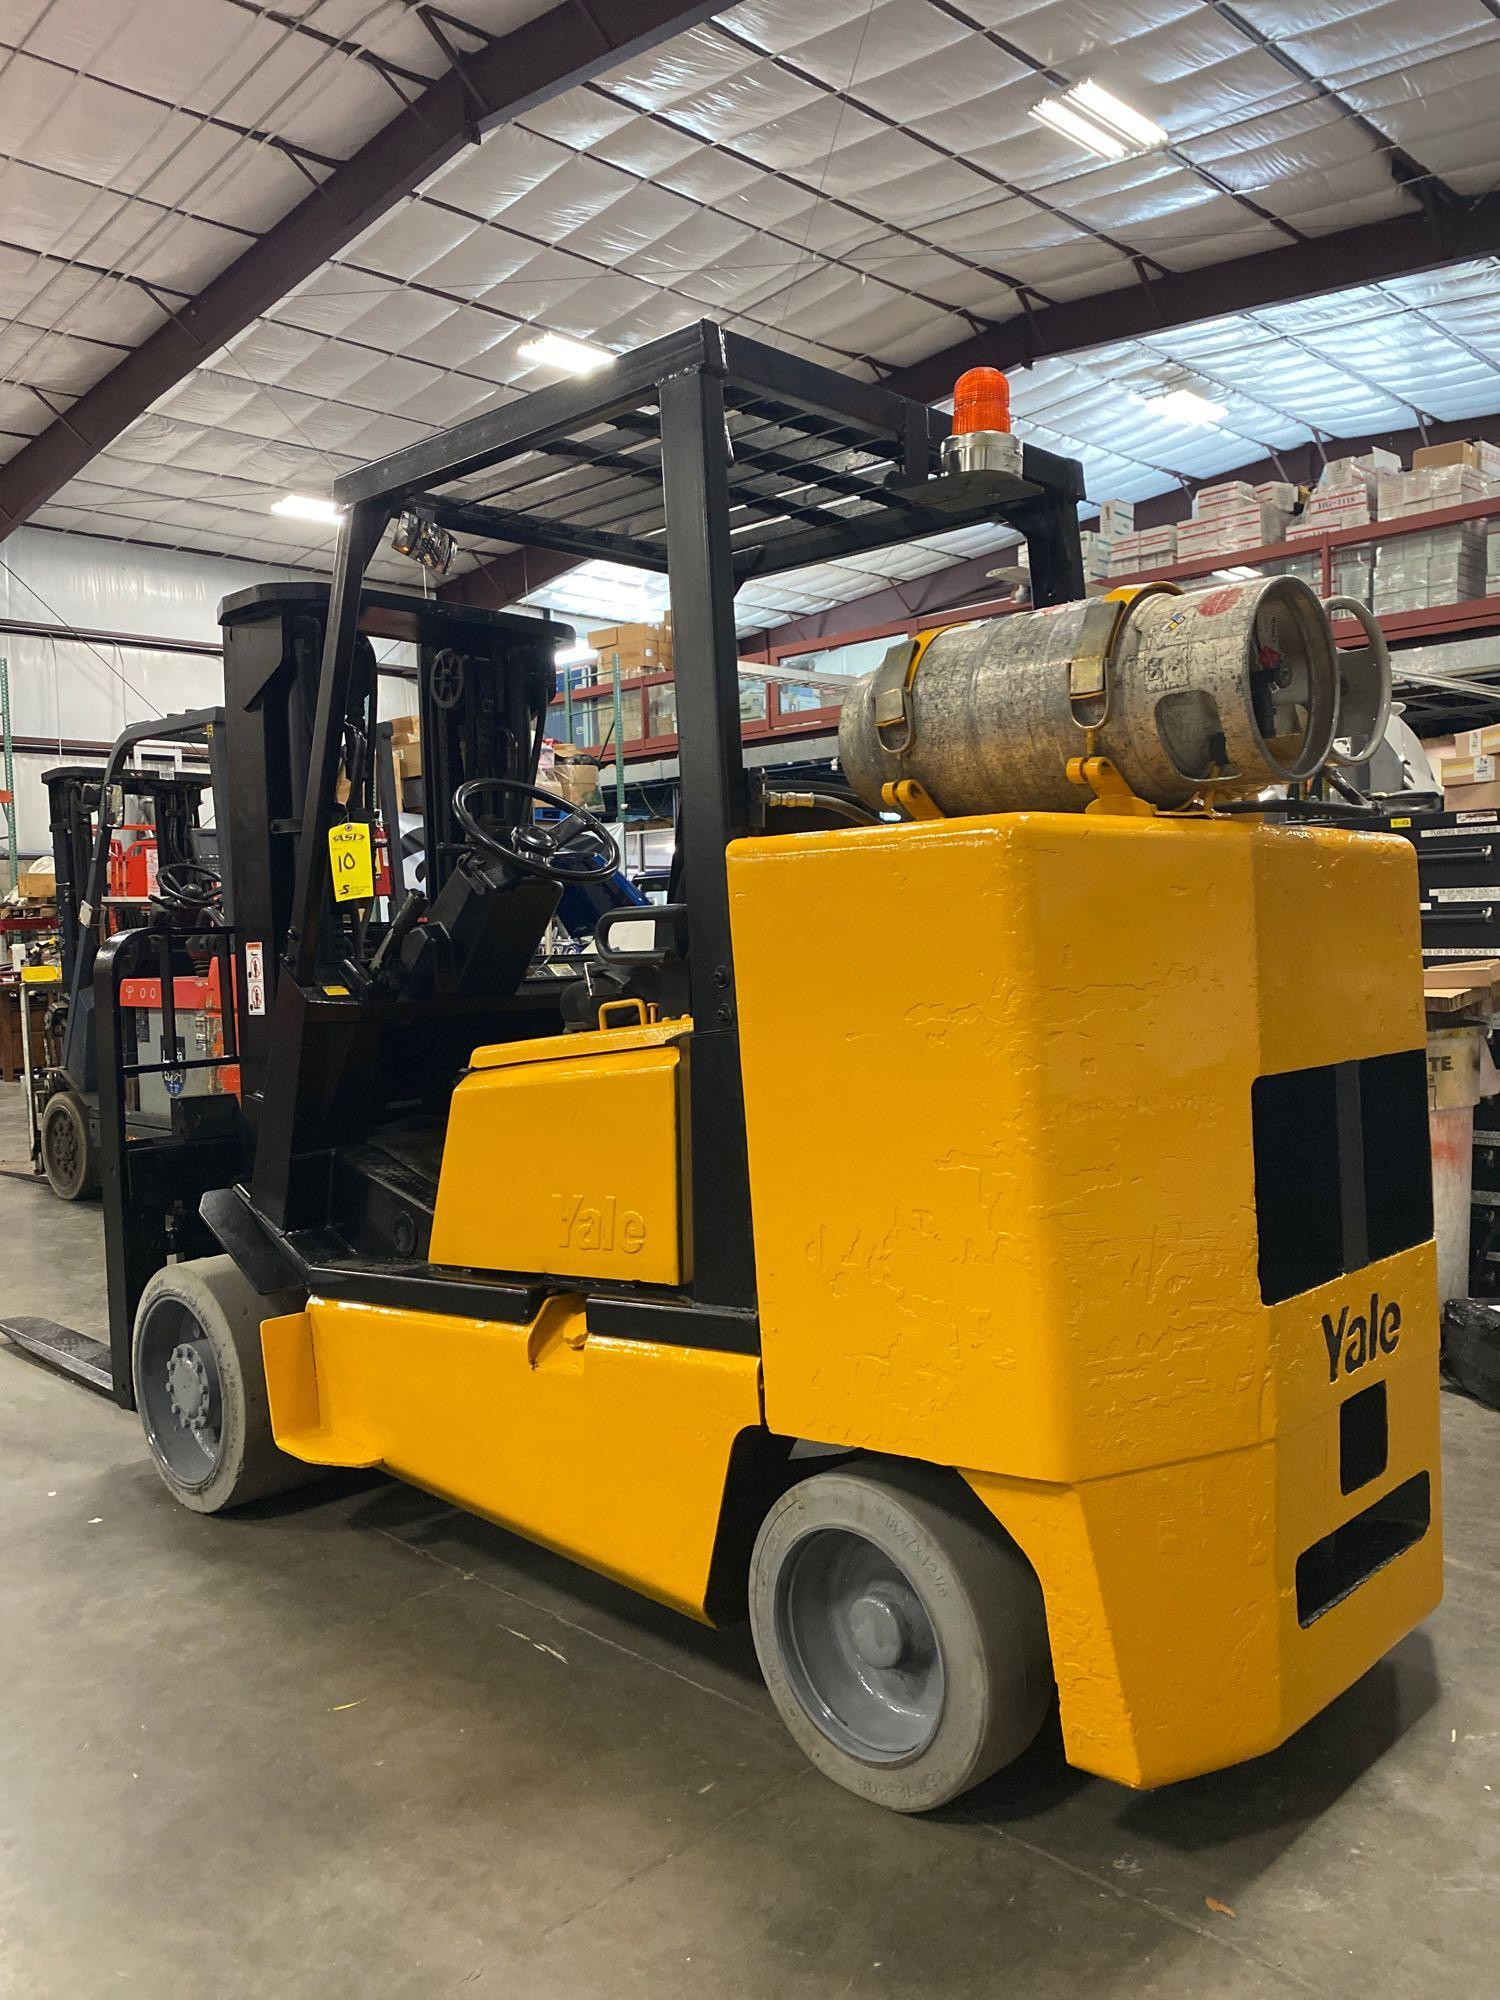 YALE LP FORKLIFT MODEL CLC120, APPROX. 12,000 LB CAPACITY, TILT, SIDE SHIFT, RUNS AND OPERATES - Image 8 of 10